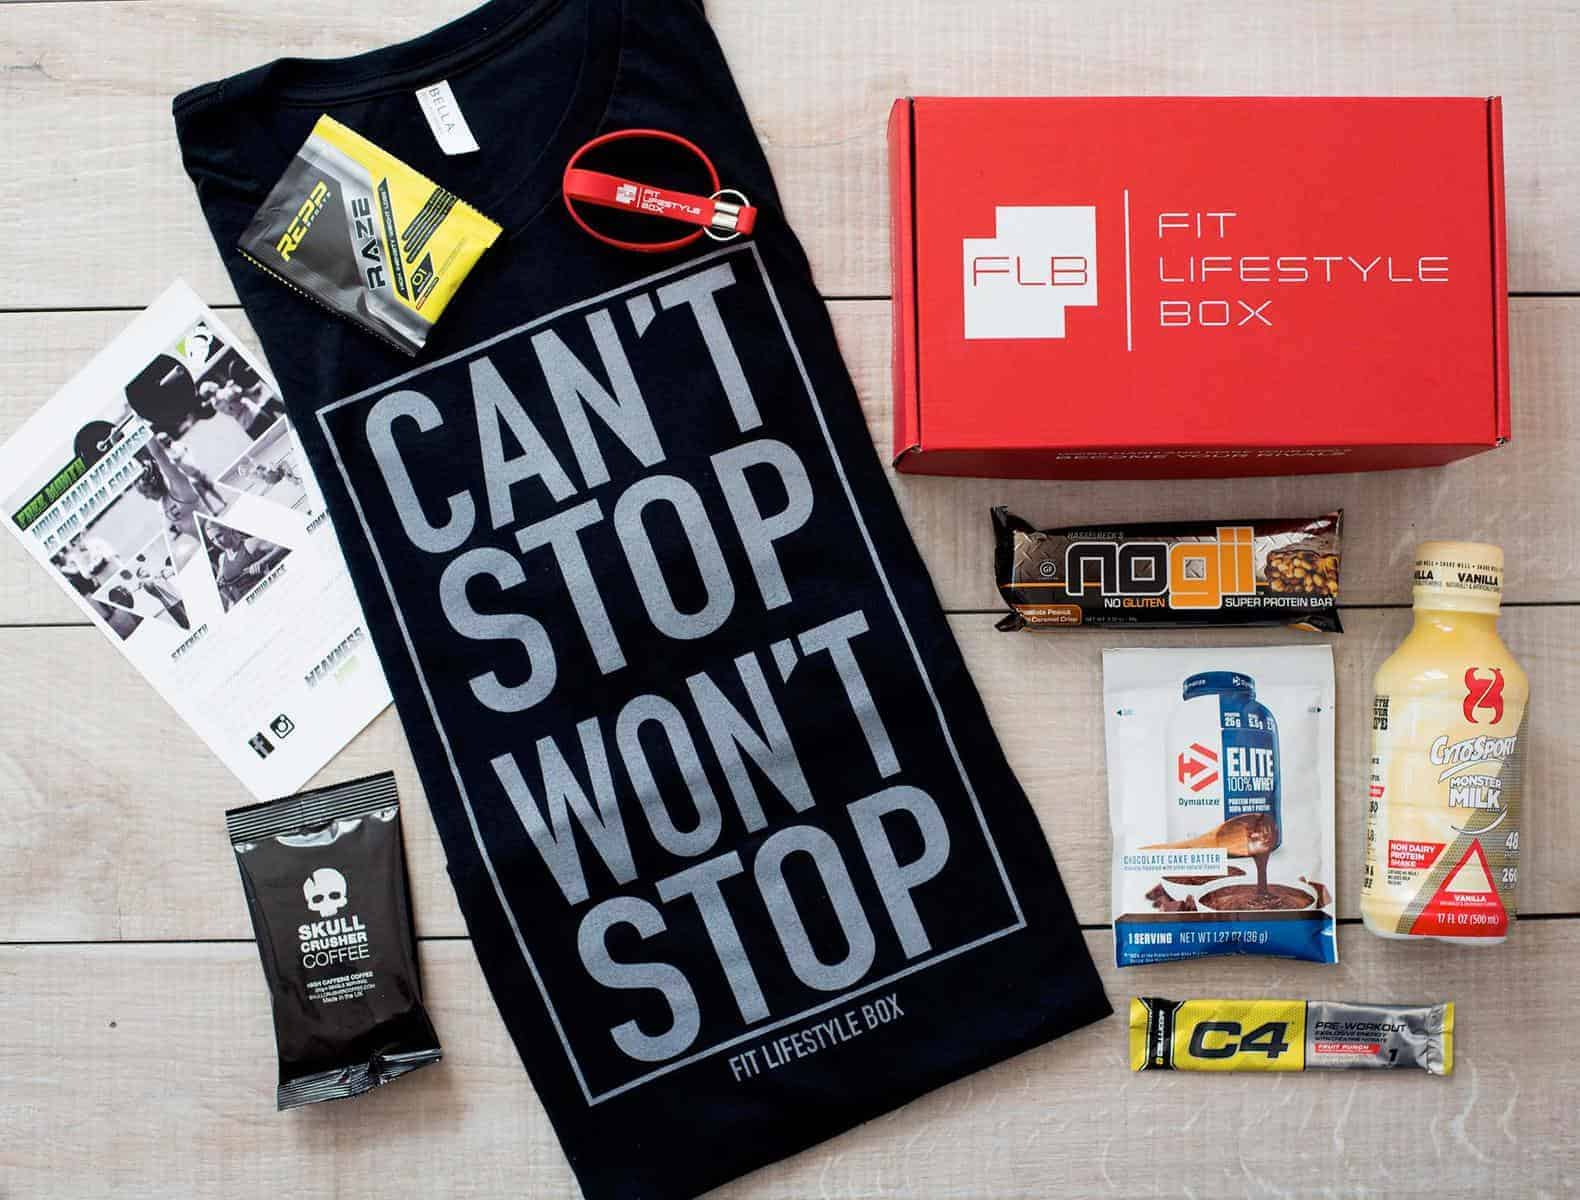 Fit Lifestyle Box Subscription